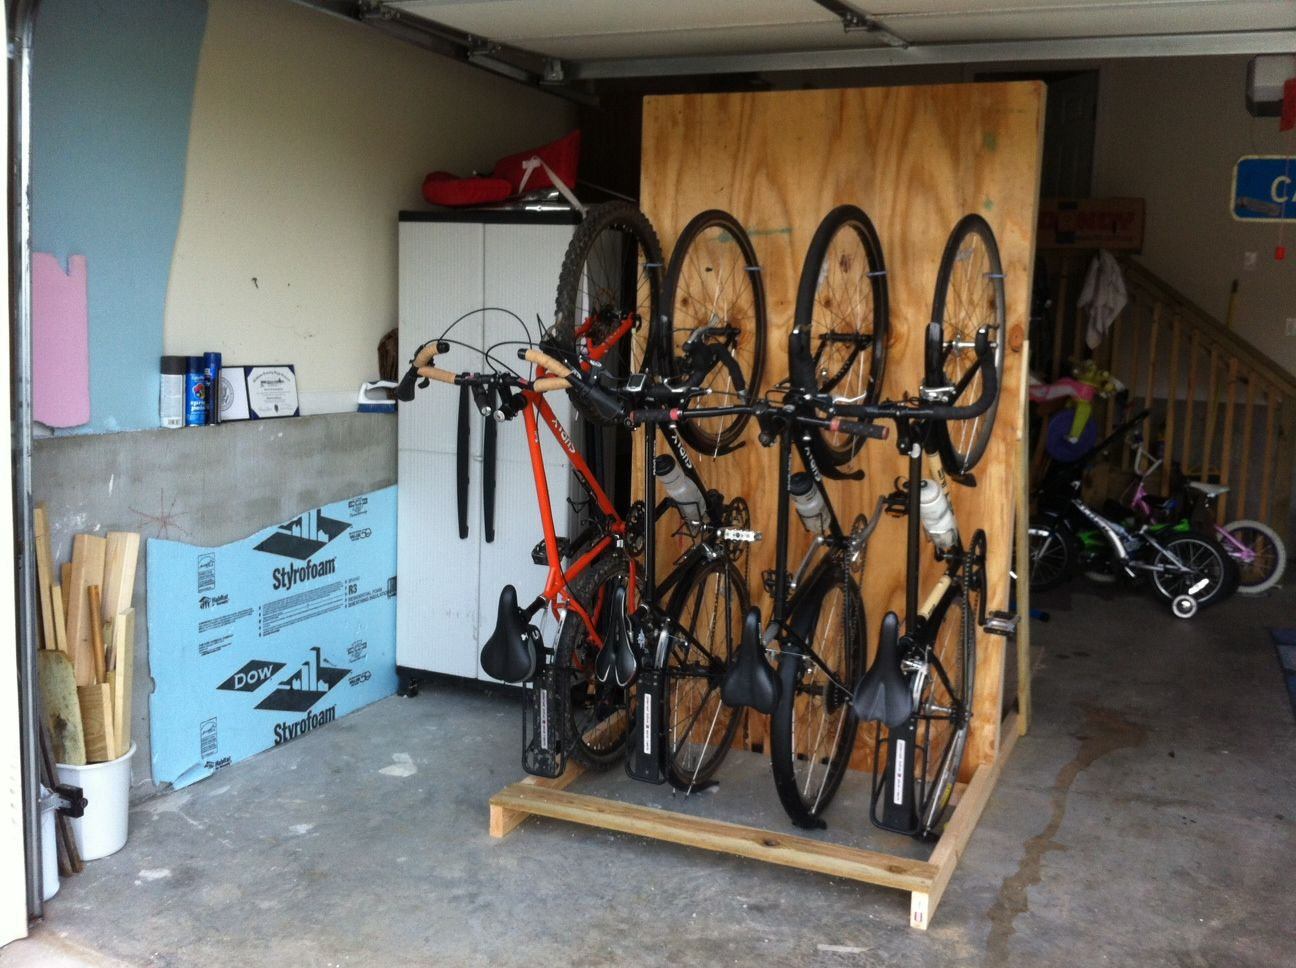 family bike words bike parking made it with pallets house design country vertical bike storage ideas with teak wood bike hangers also concrete tile floor and colorful wall painted for youngster bike storage